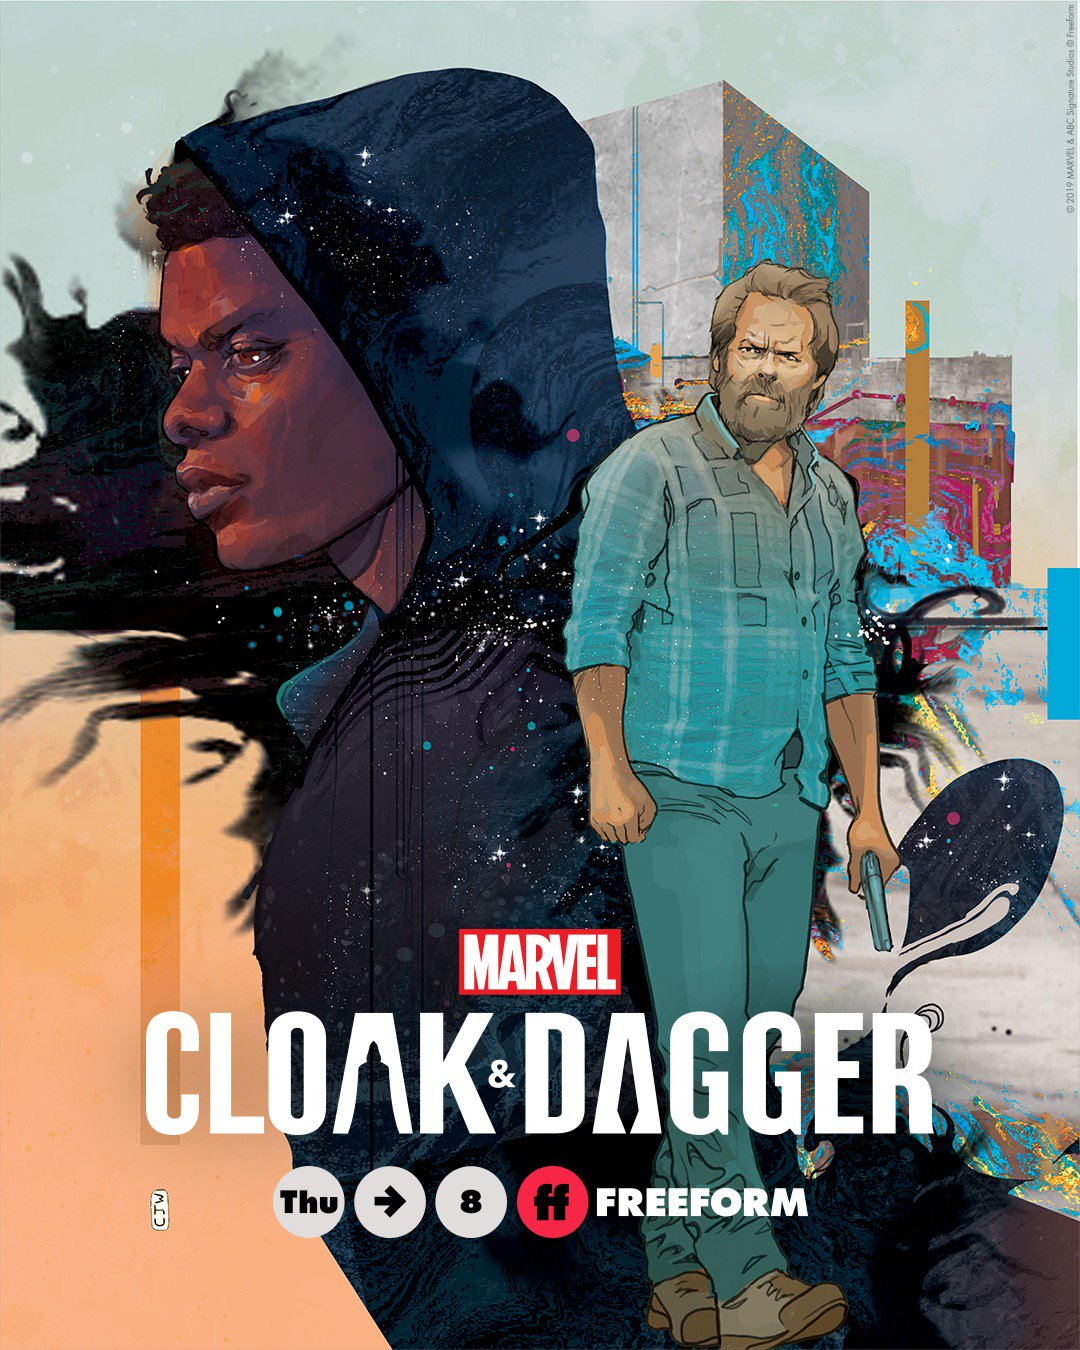 Cloak and Dagger Season 2 Episode 5 Poster